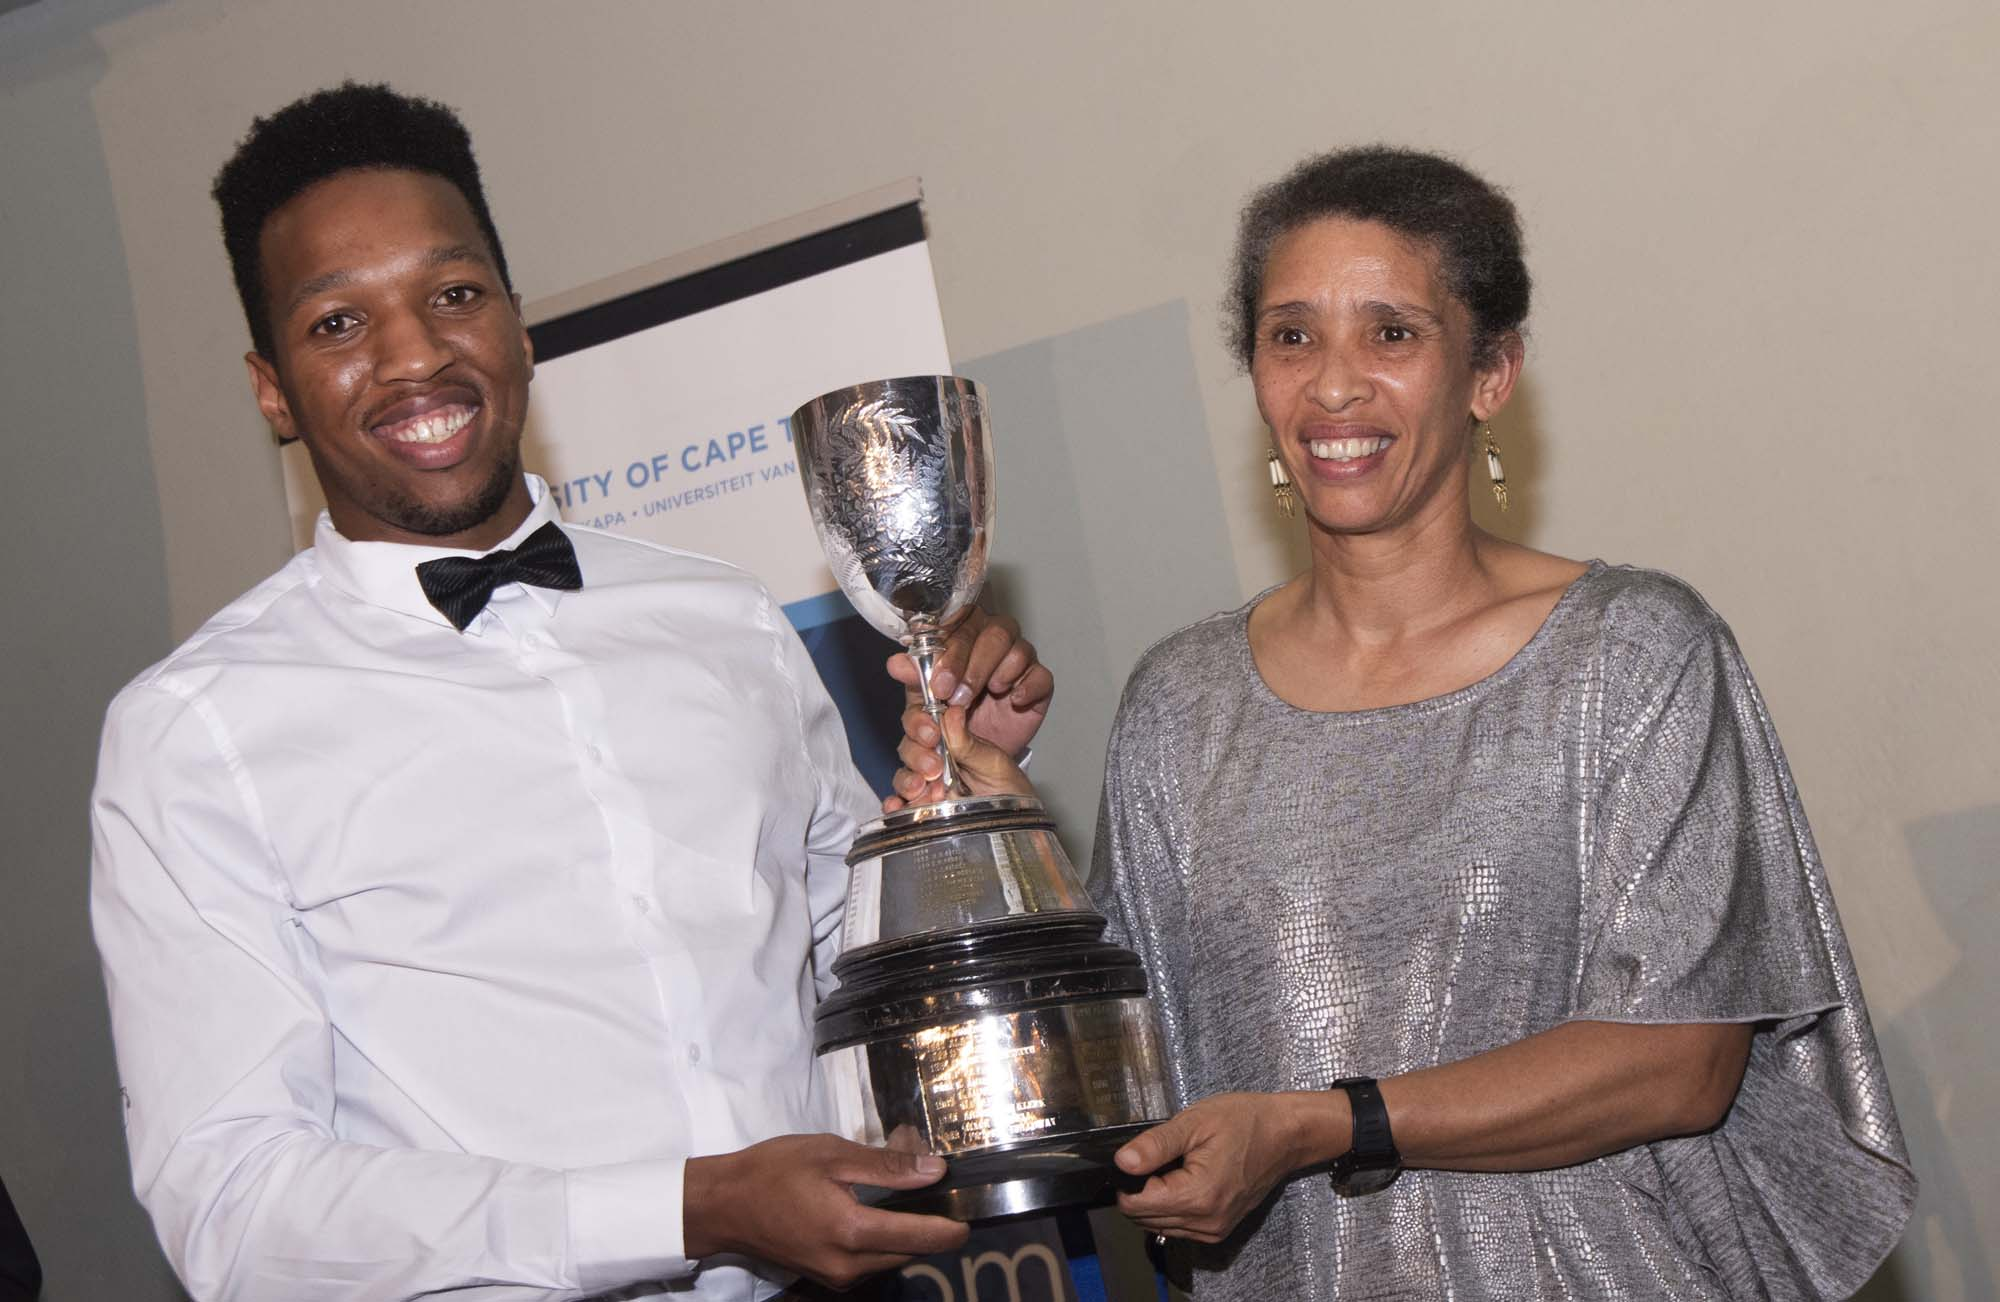 Edwina Brooks, director of Student Affairs, presents UCT sprint sensation Mpumelelo Mhlongo with the Jamison Cup for an incredible fifth consecutive year.